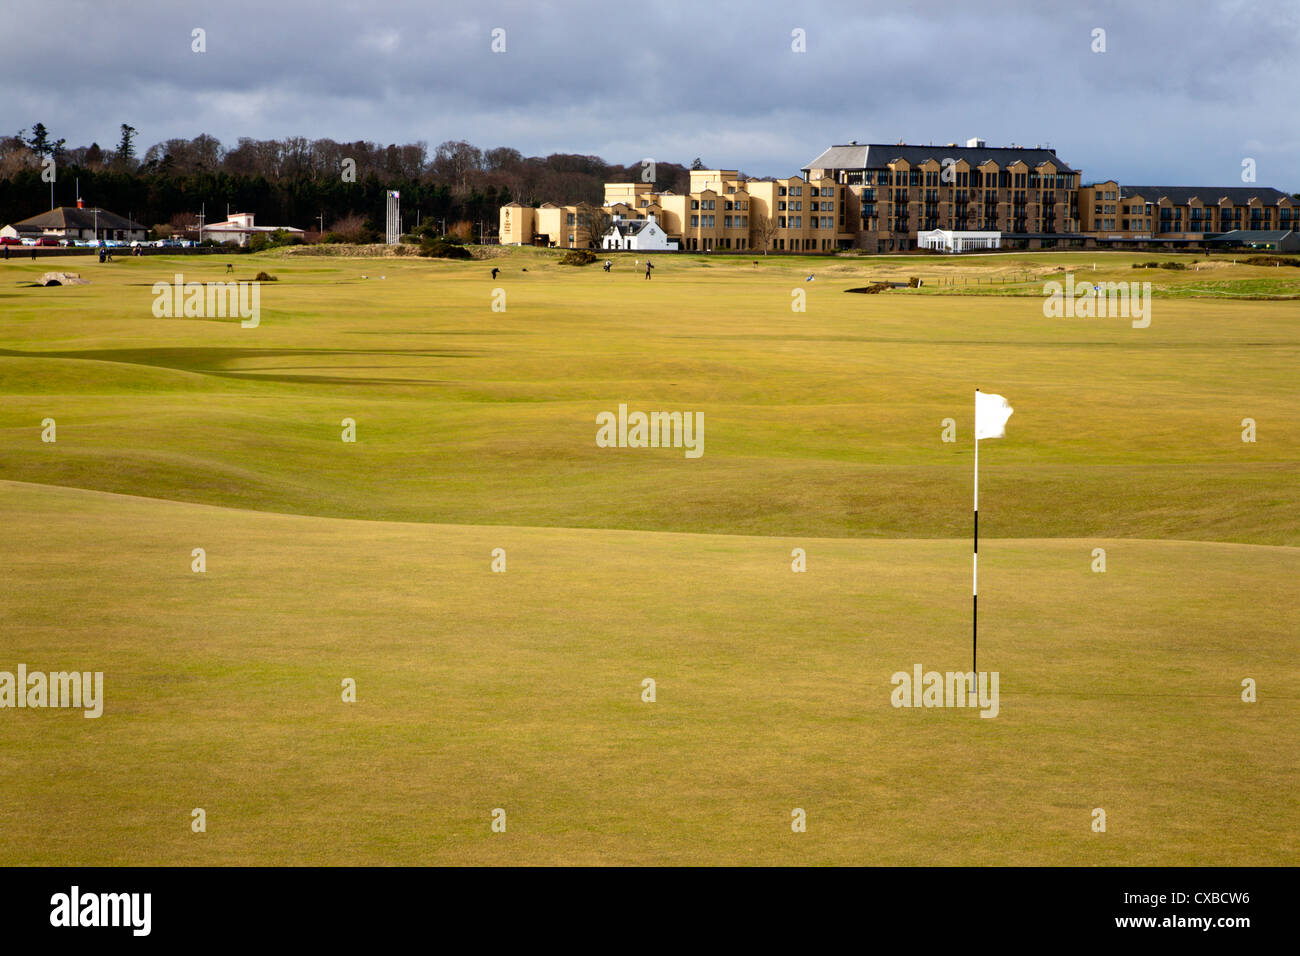 Eighteenth Green at The Old Course, St. Andrews, Fife, Scotland, United Kingdom, Europe - Stock Image